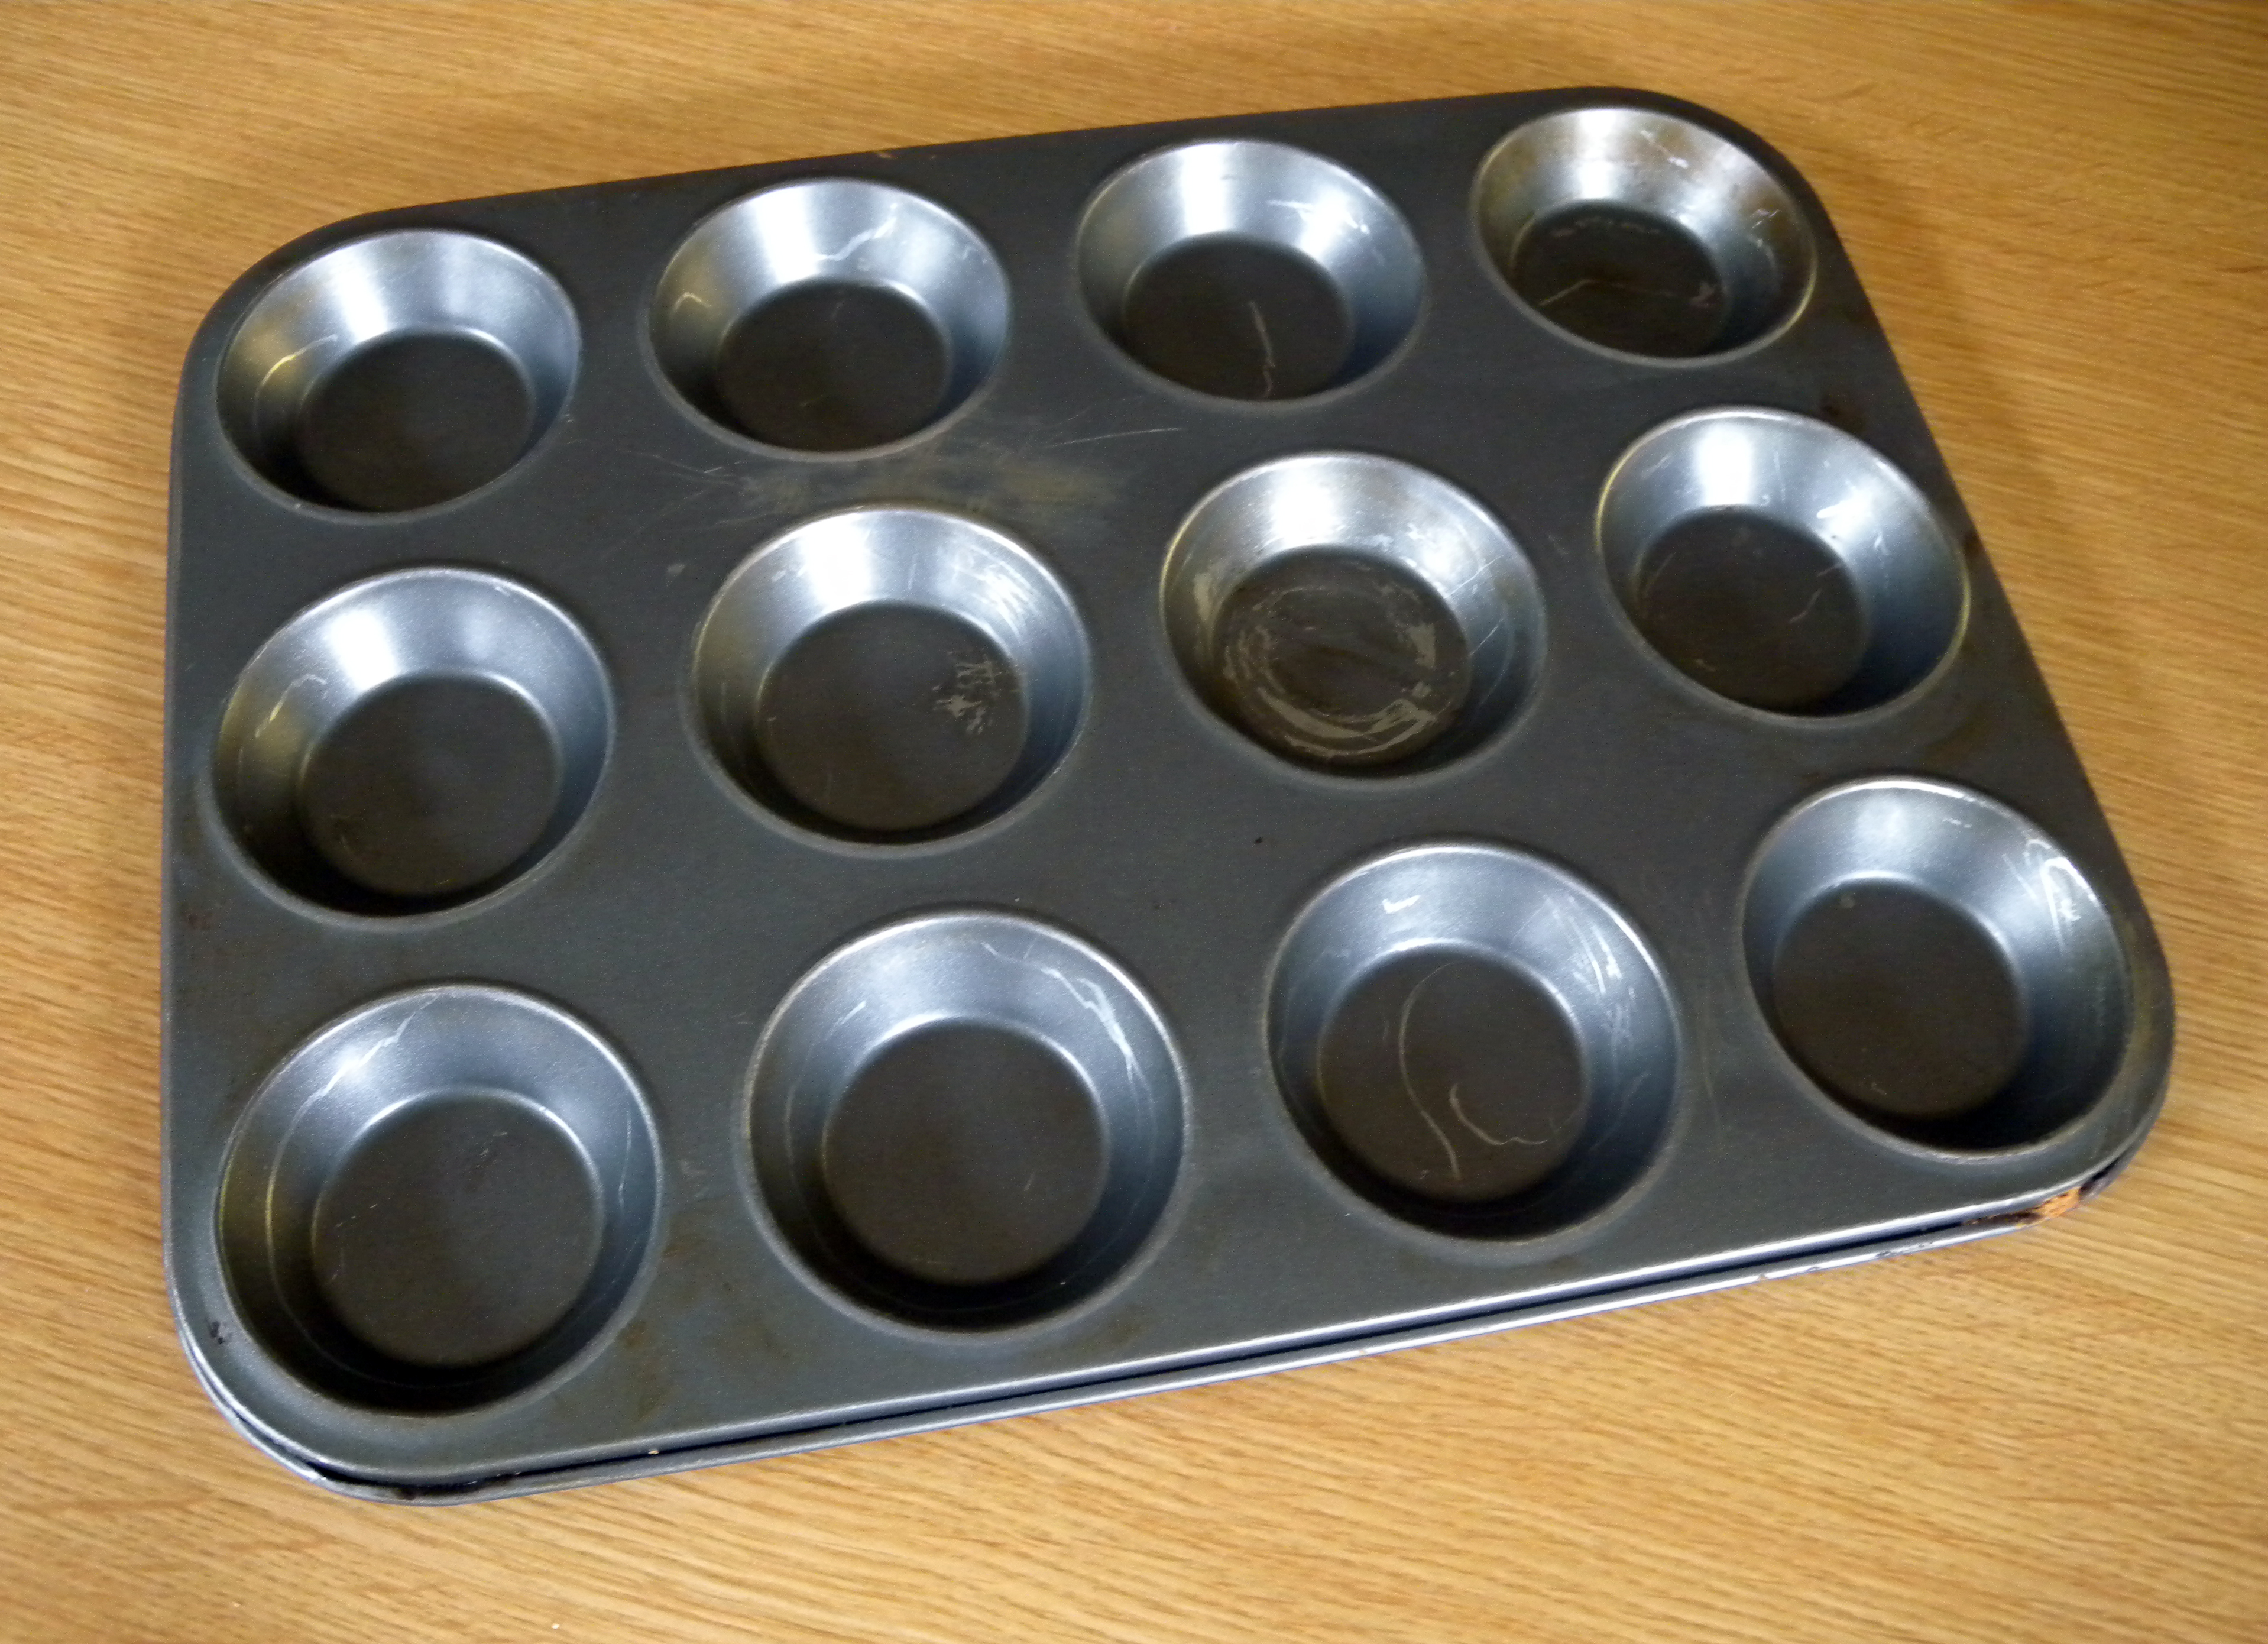 A baking tray or tin with six, nine of twelve shallow round depressions for putting in batter or dough to make buns, pastry or cakes.